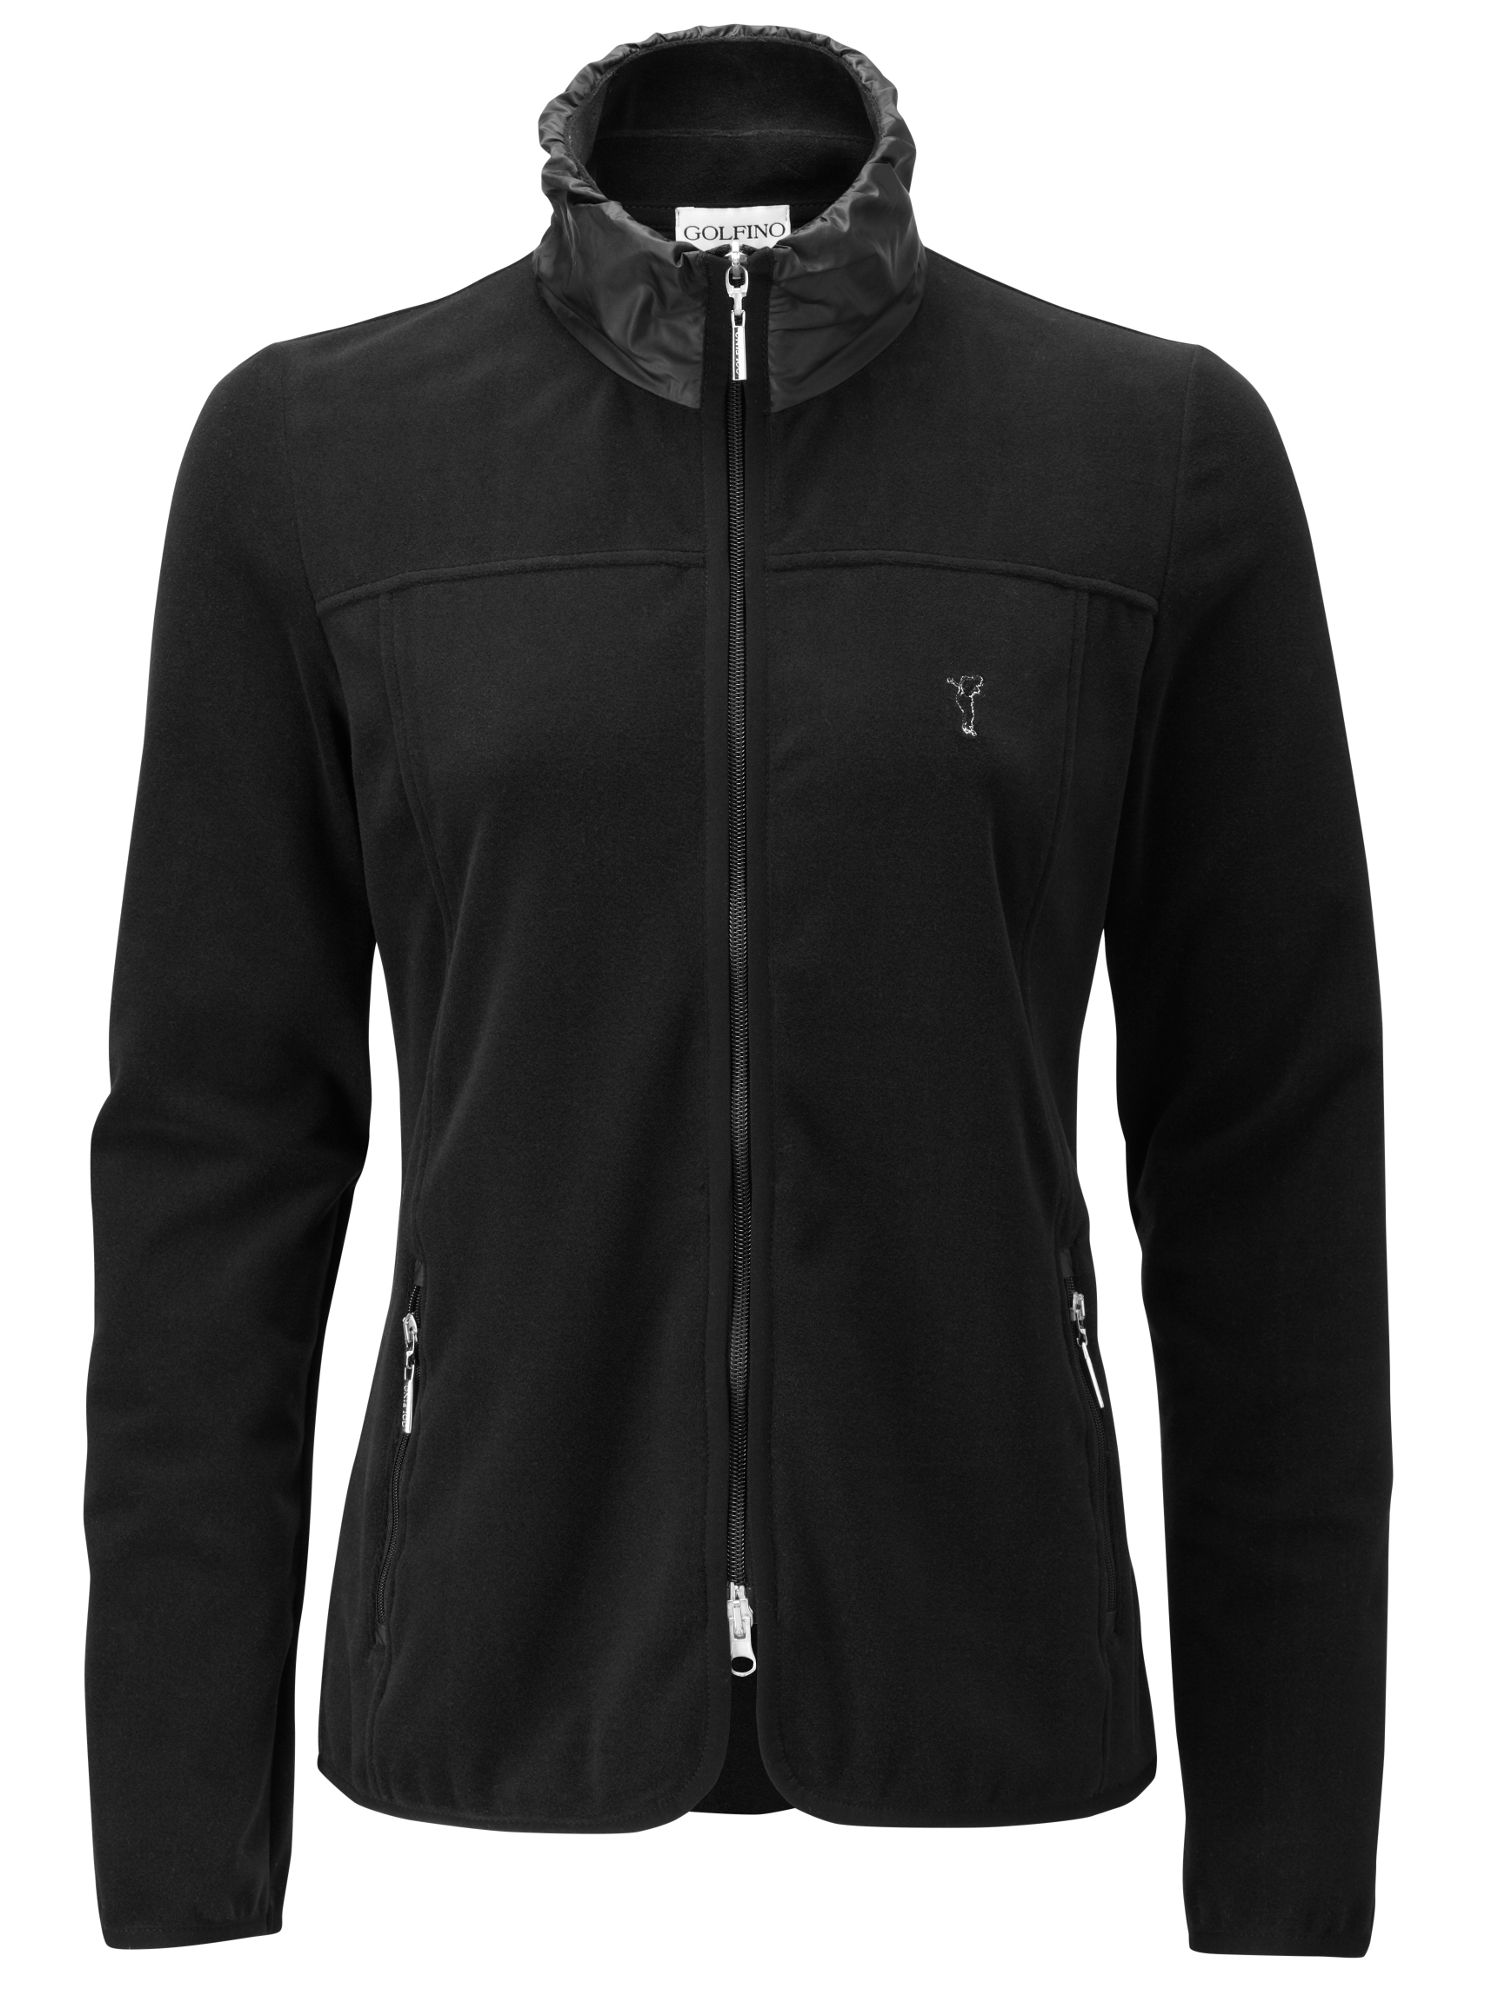 Techno stretch fleece jacket